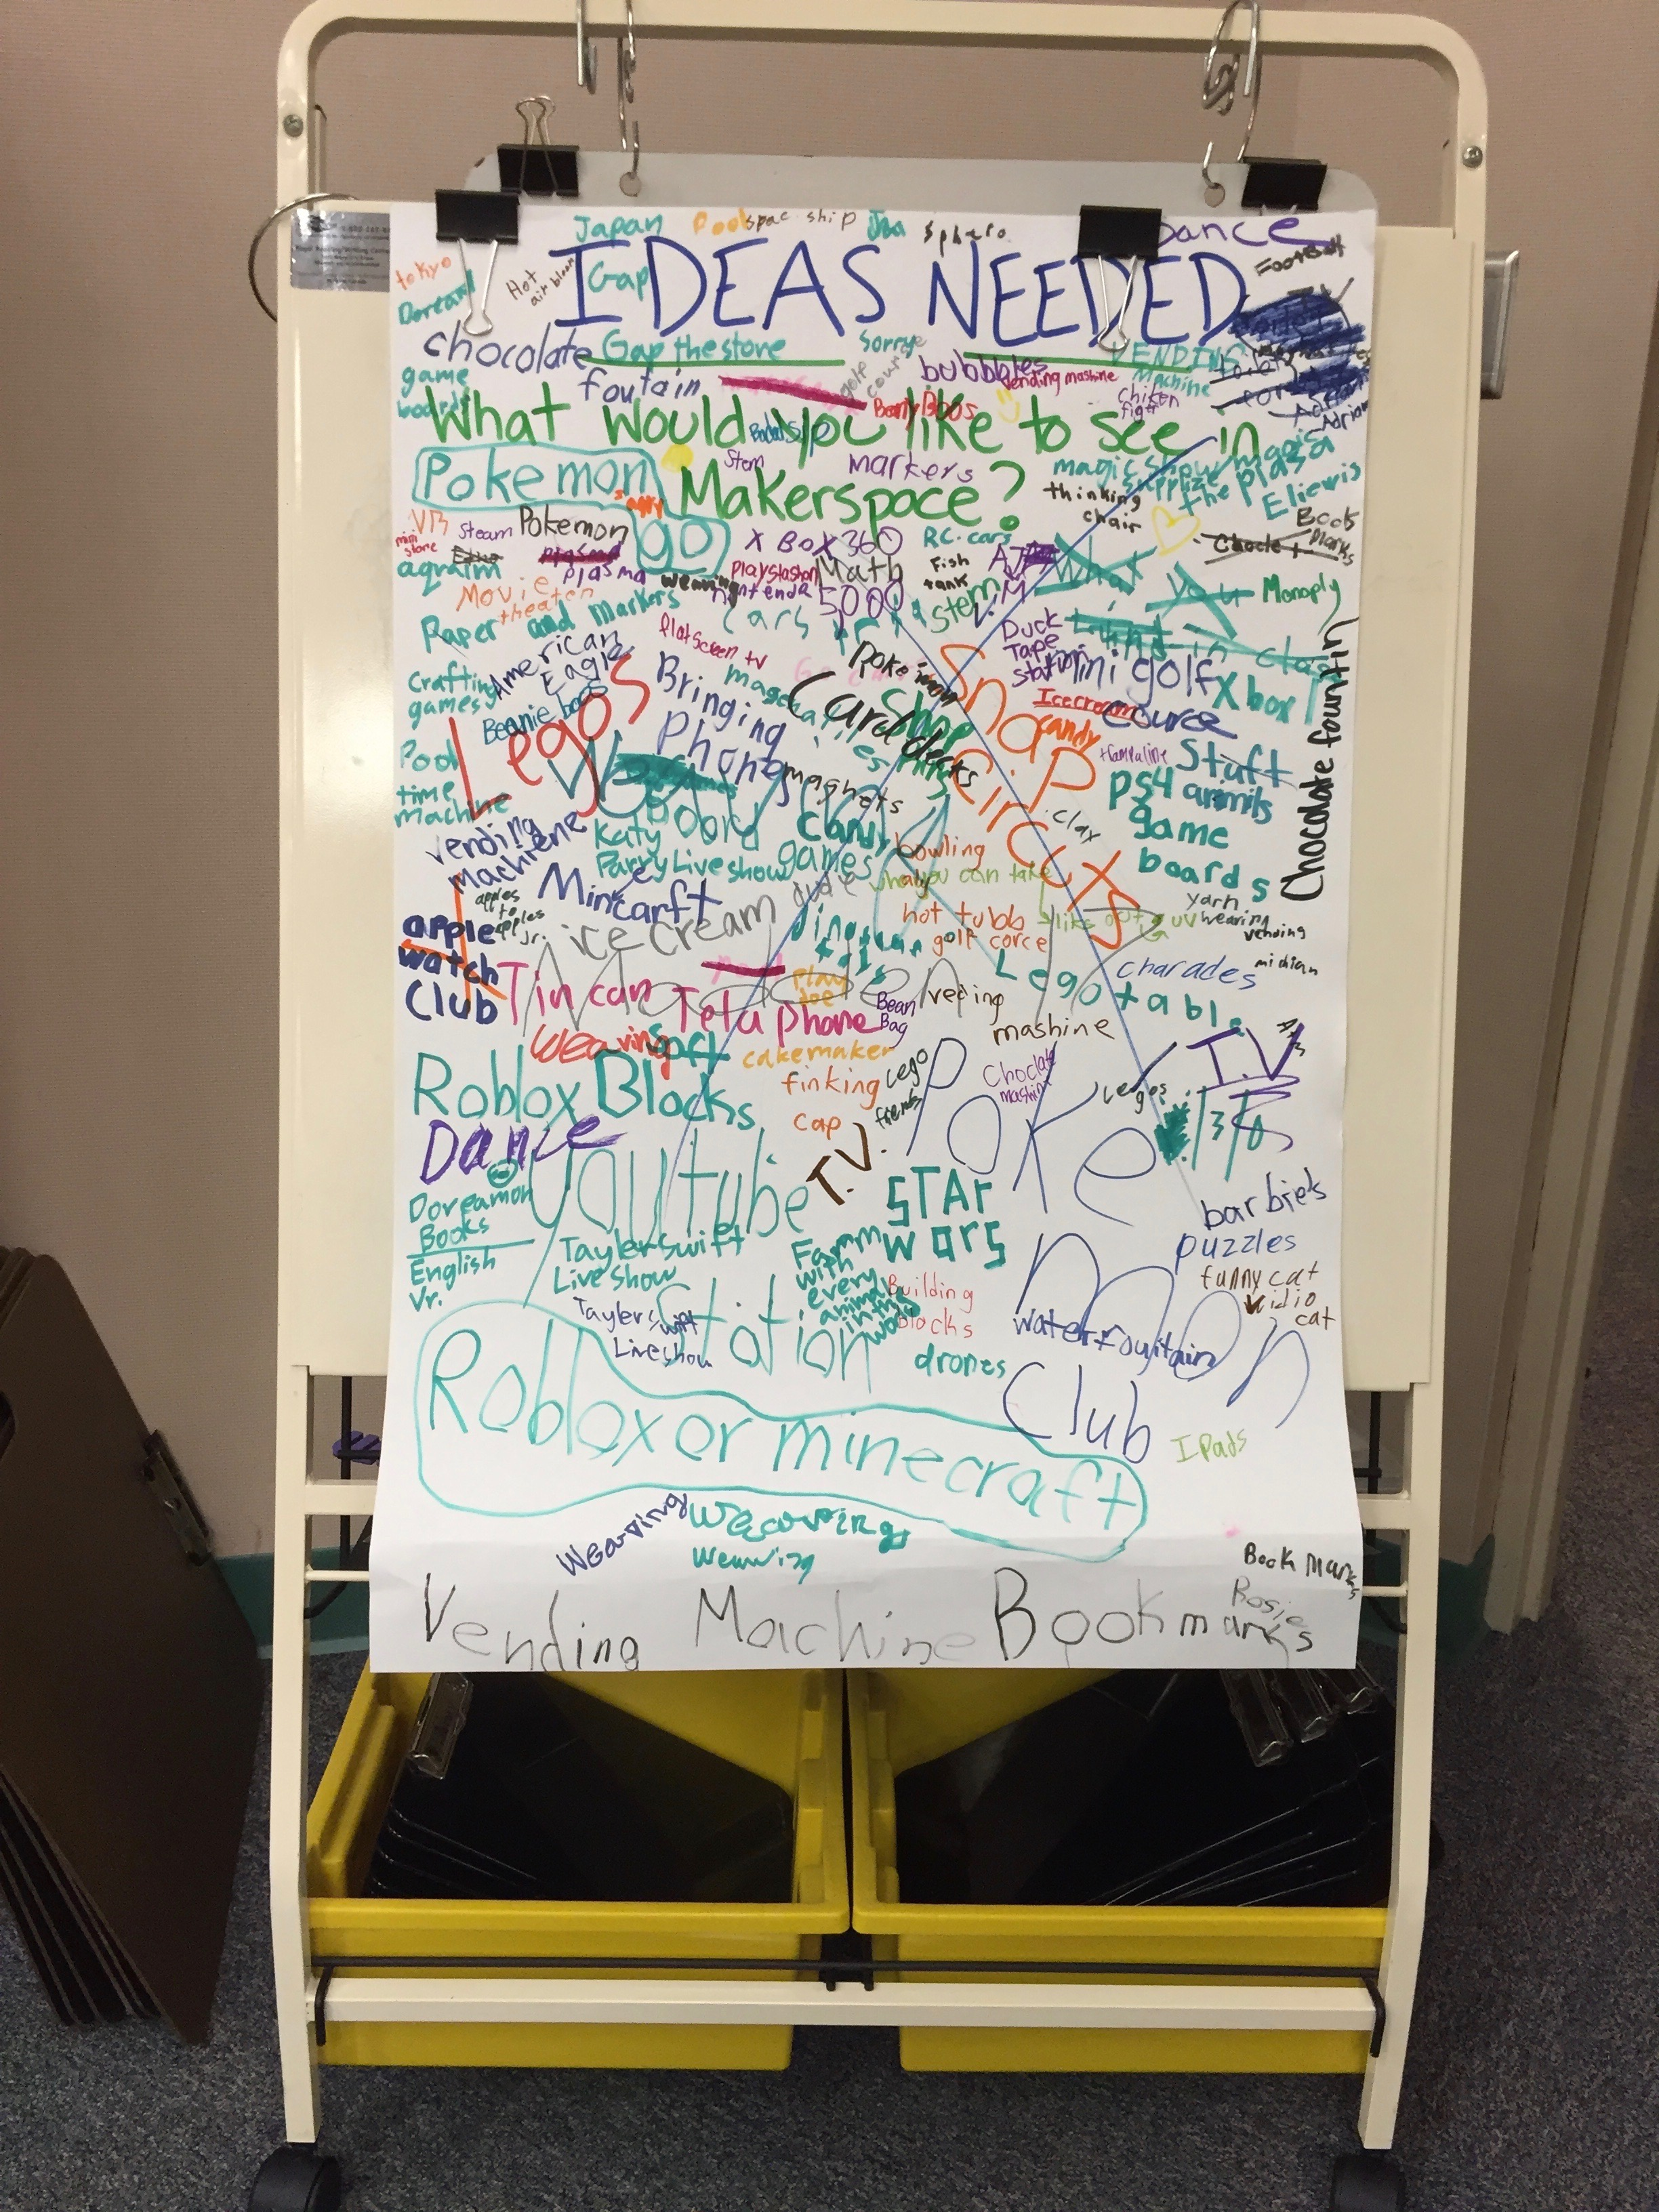 a large sheet of paper covered in ideas generated by the students of the school